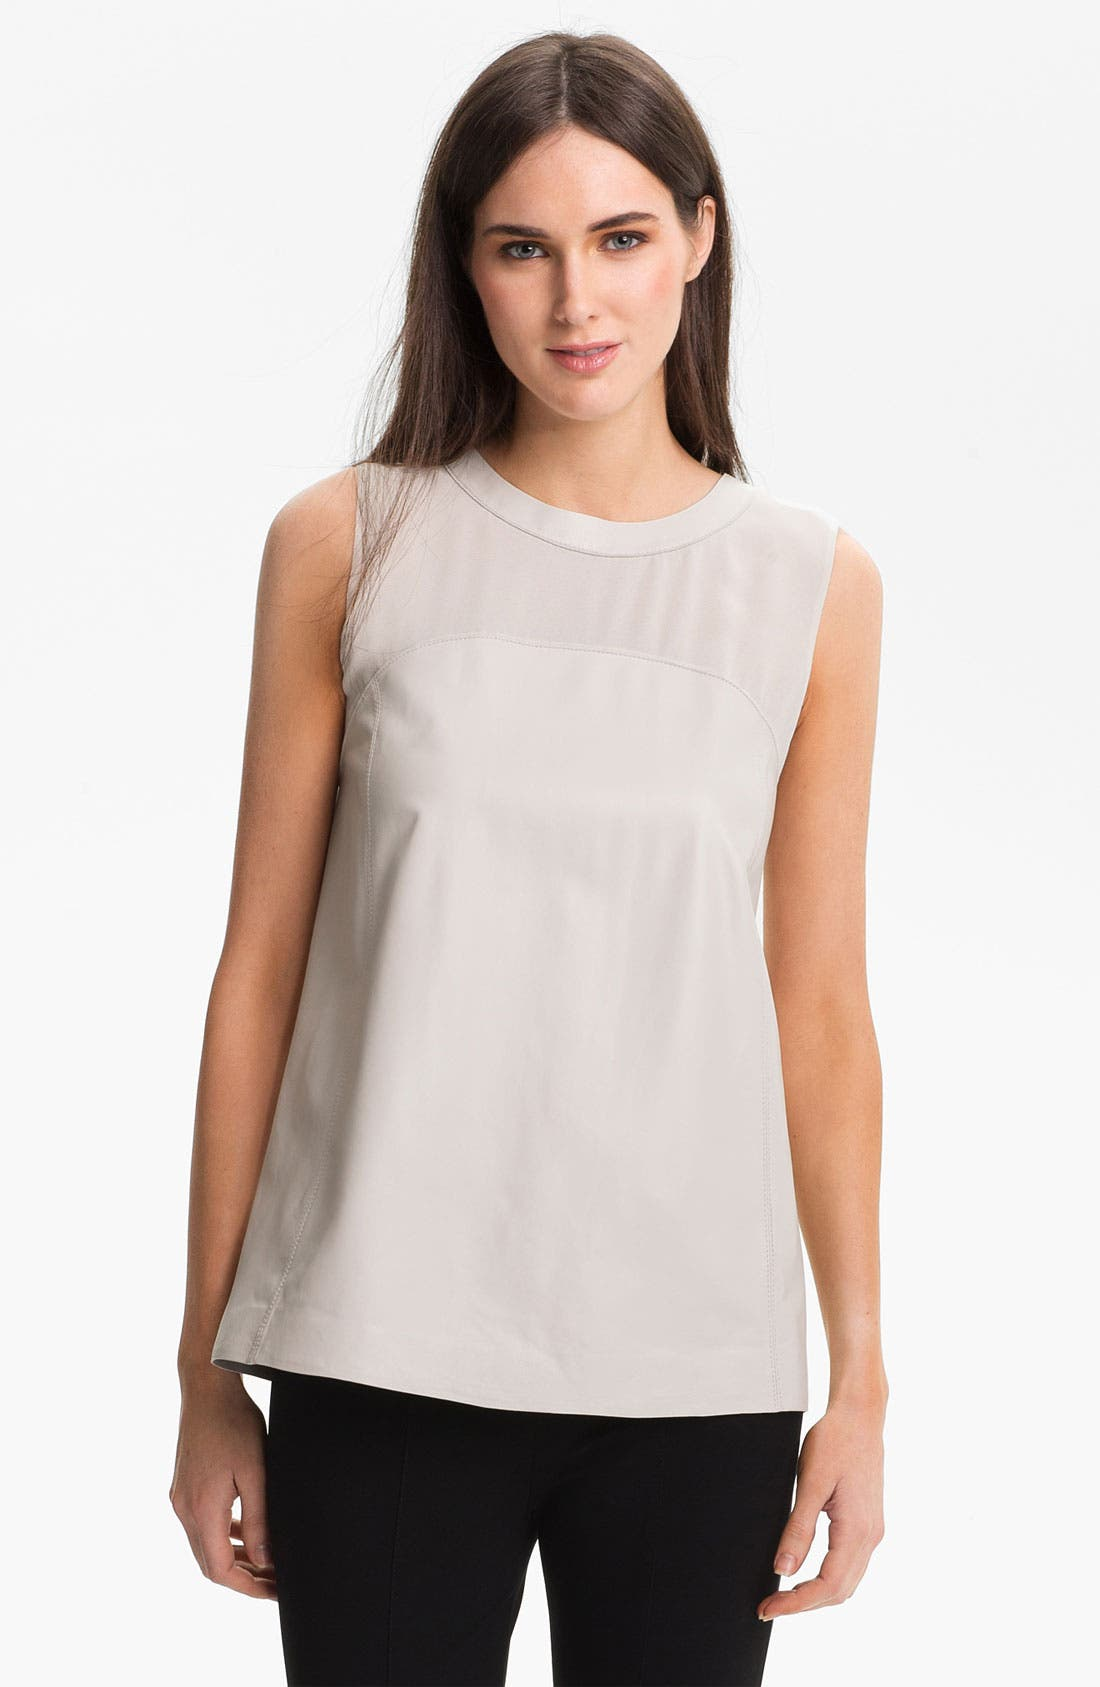 Alternate Image 1 Selected - Lafayette 148 New York Tissue Weight Lambskin Top